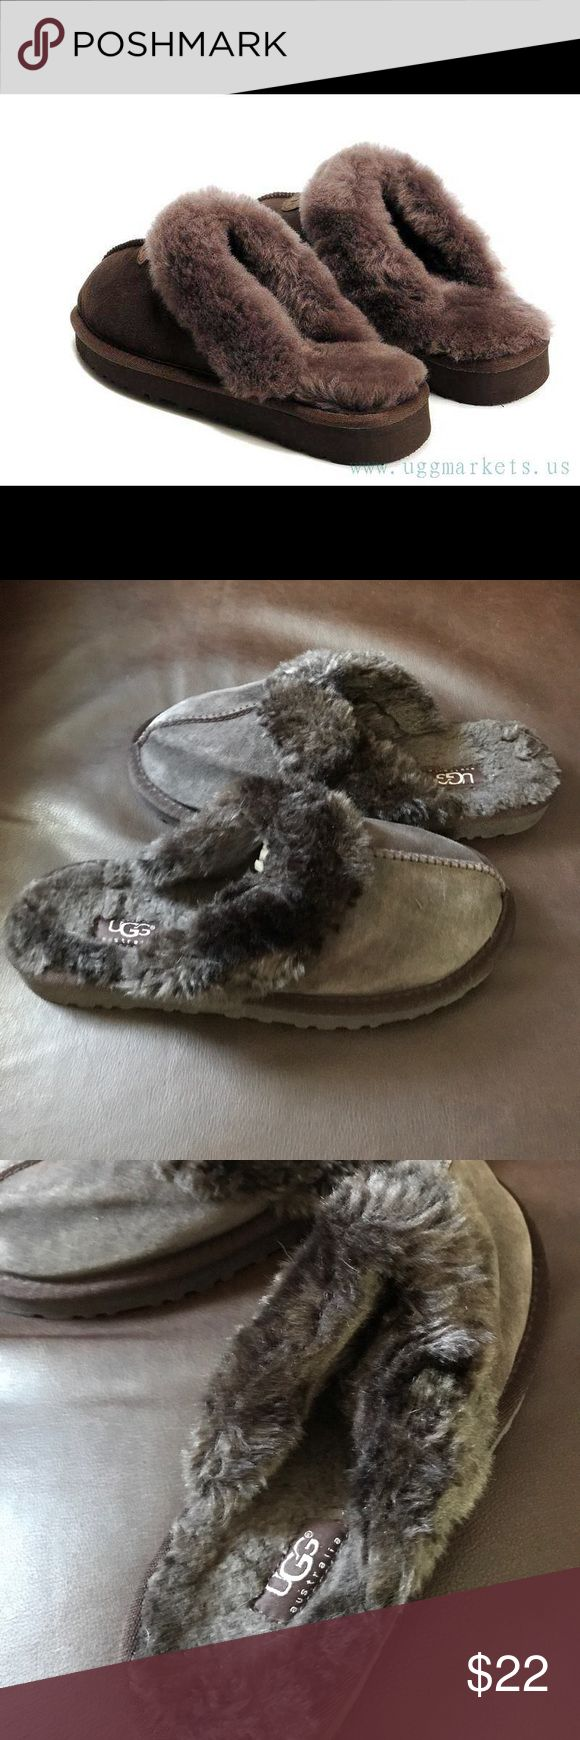 1️⃣HR SALE! Ugg slippers Dark brown Ugg slippers. Barely worn. Top of fur in great condition. Some fur is in decent condition. So let's are in awesome condition no burt and show none/minimal ware. The main part of the shoe is a little flimsy just because they were put away and not worn in awhile. UGG Shoes Slippers